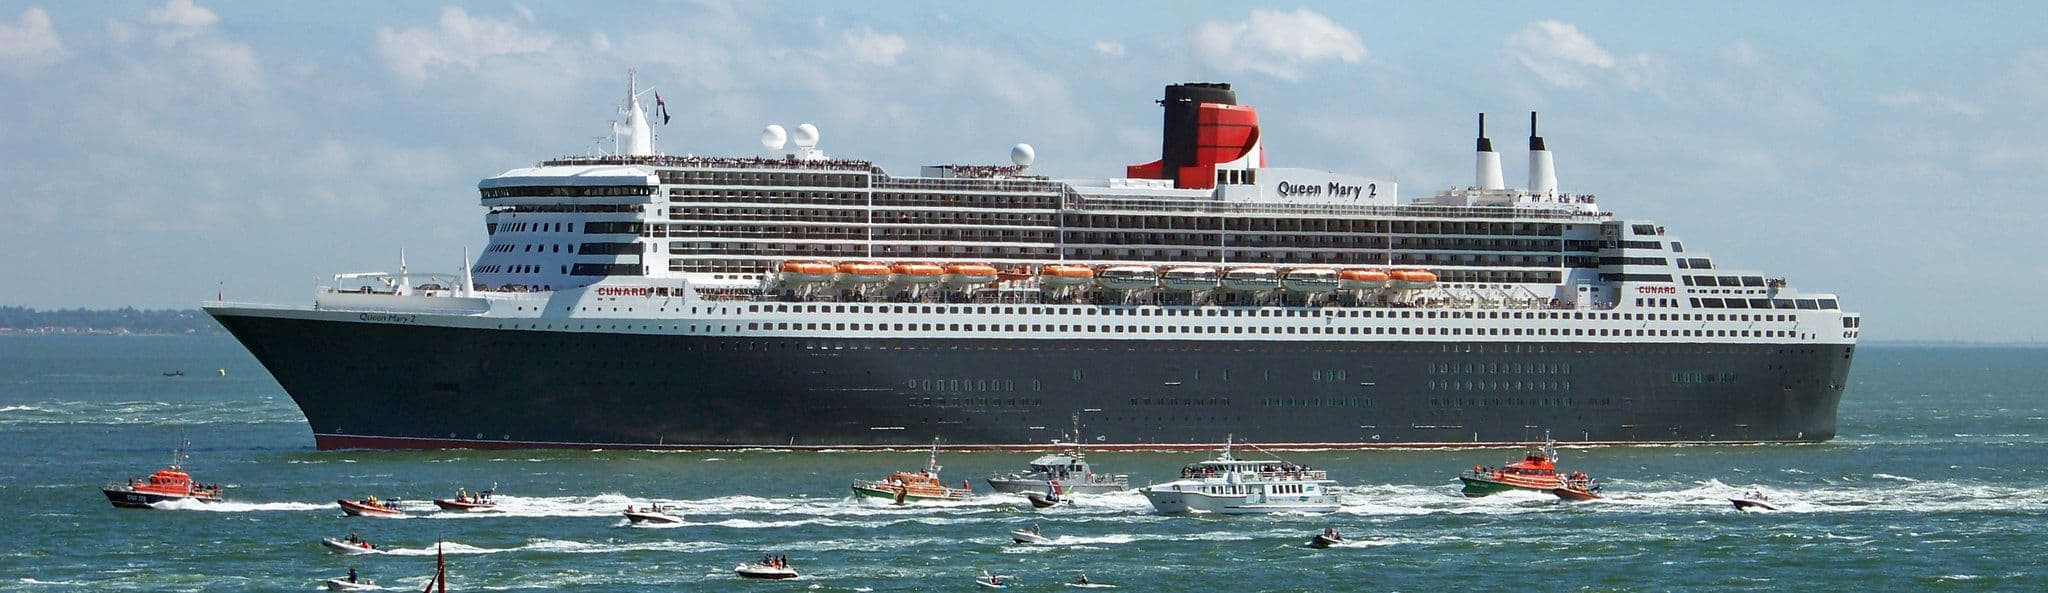 Queen mary 2 for Garderobe queen mary 2